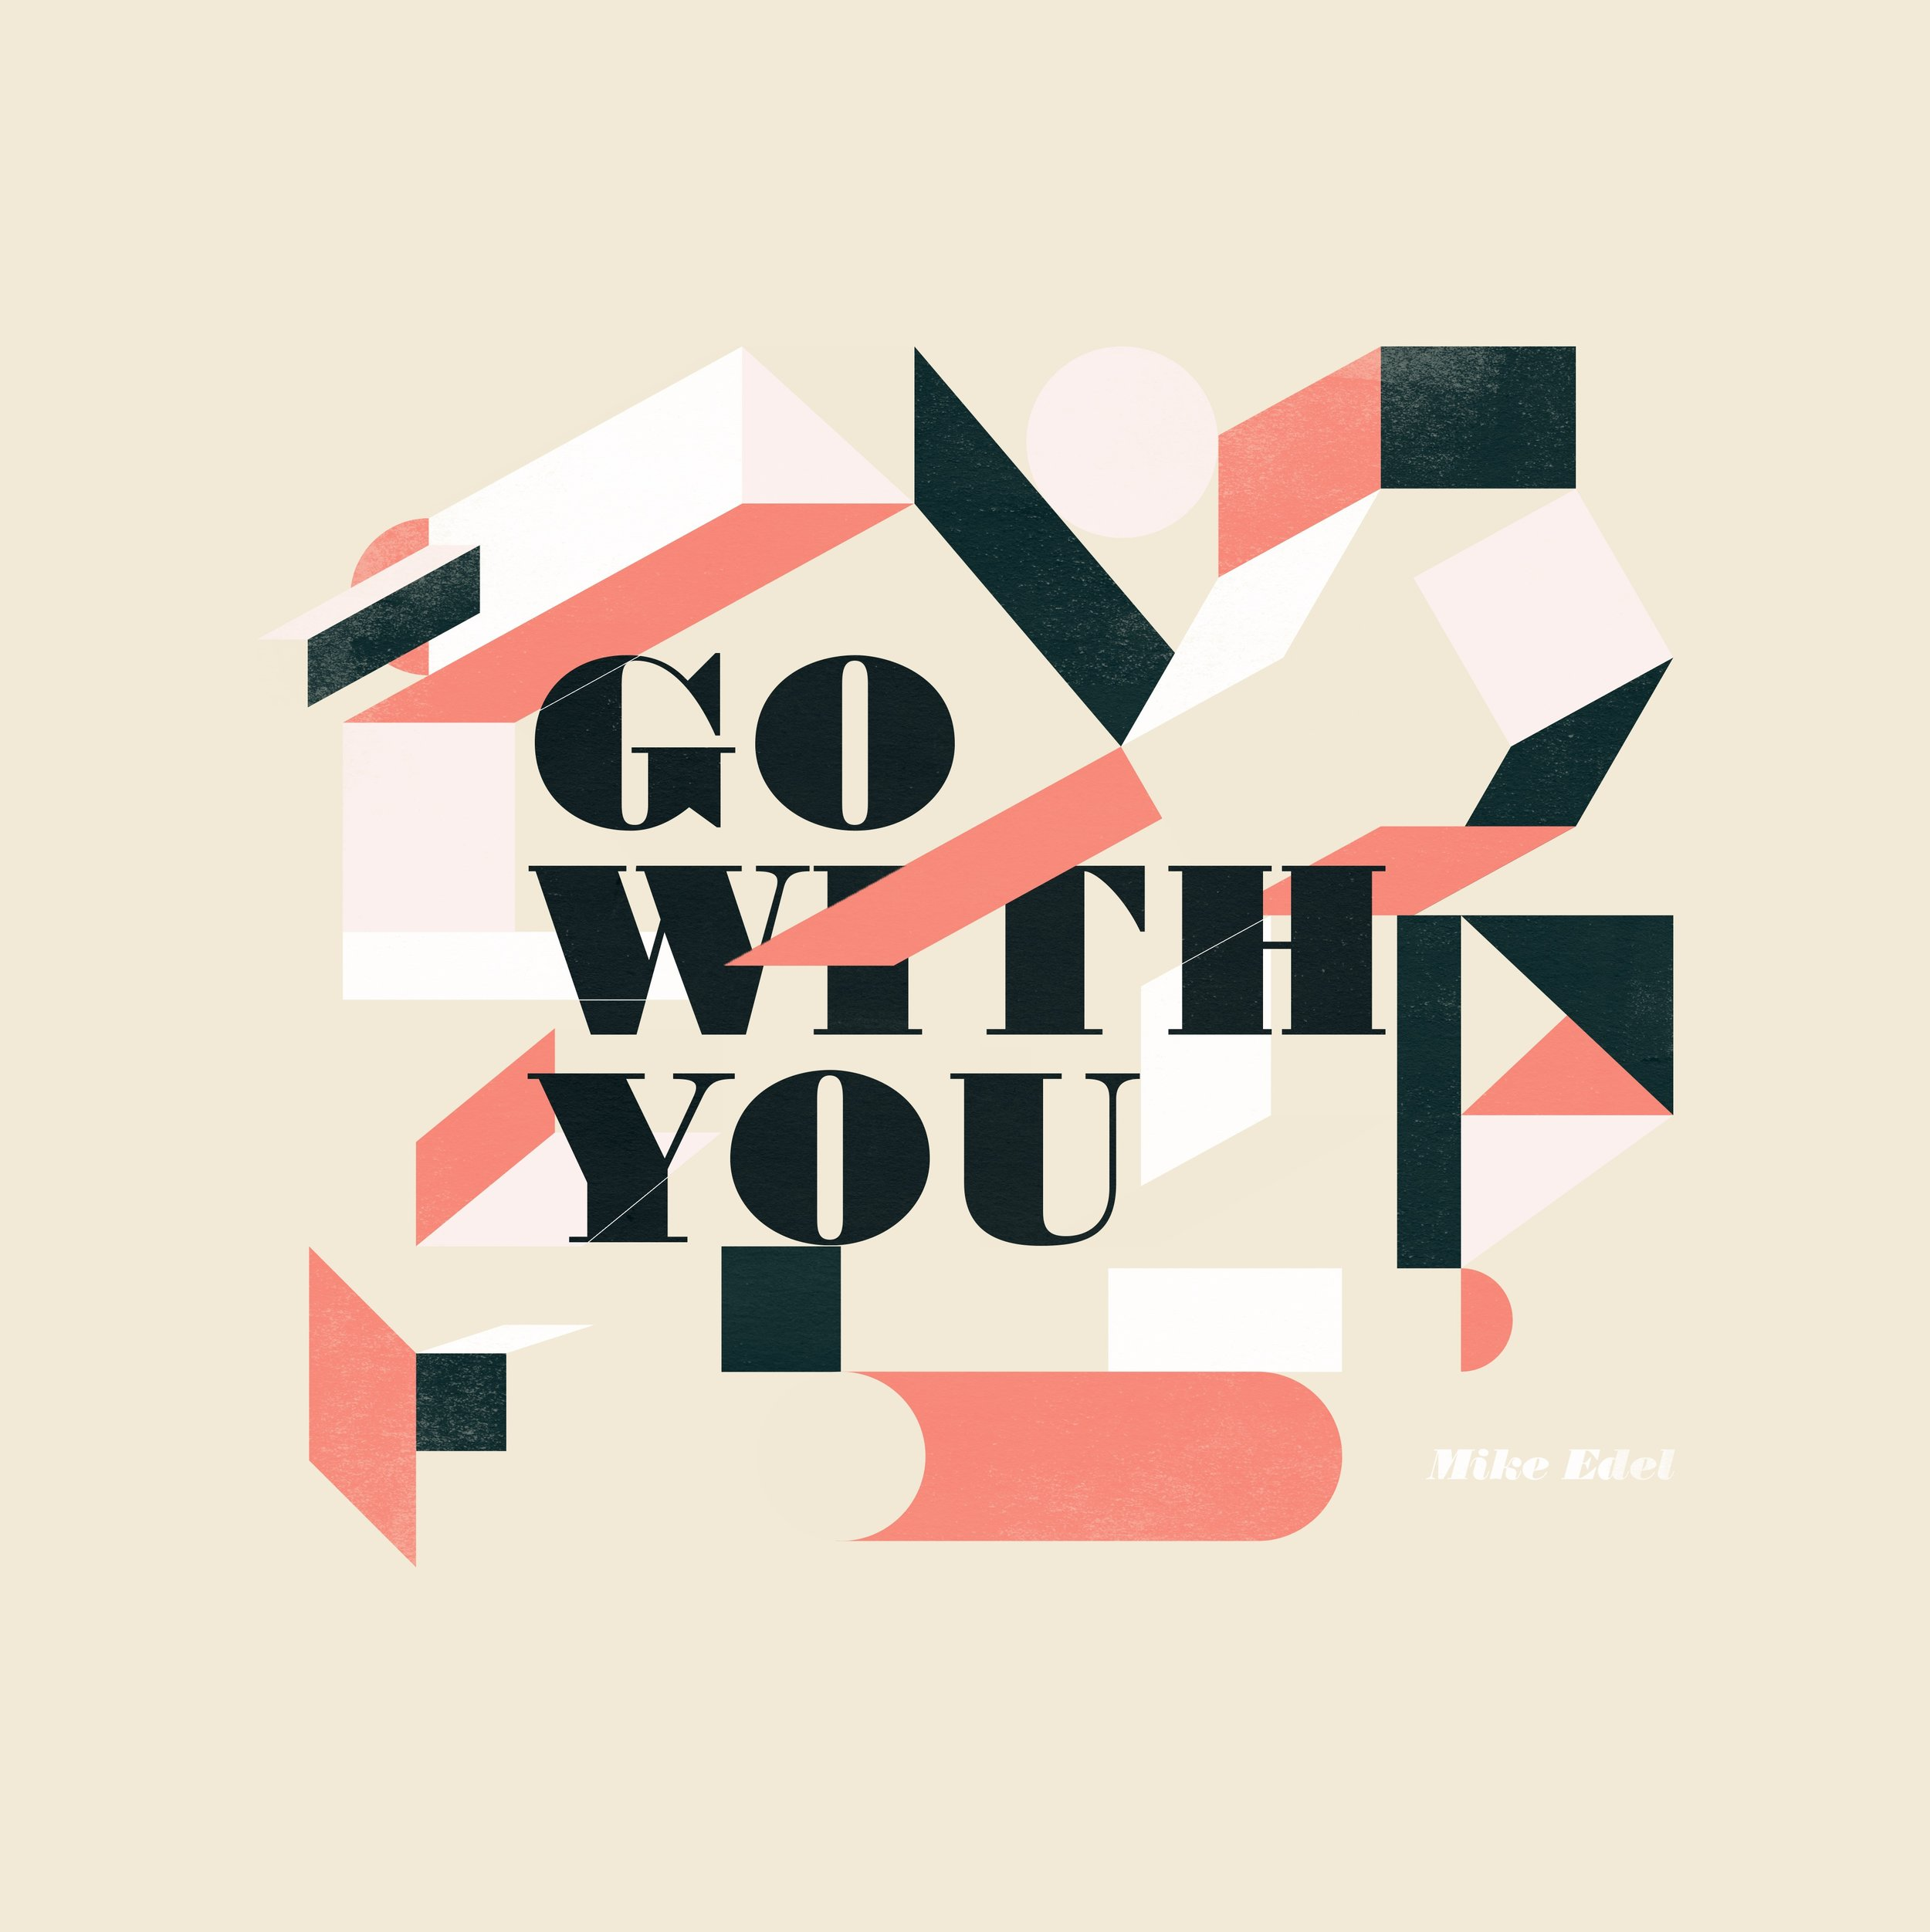 Go With You - Mike Edel Single Art